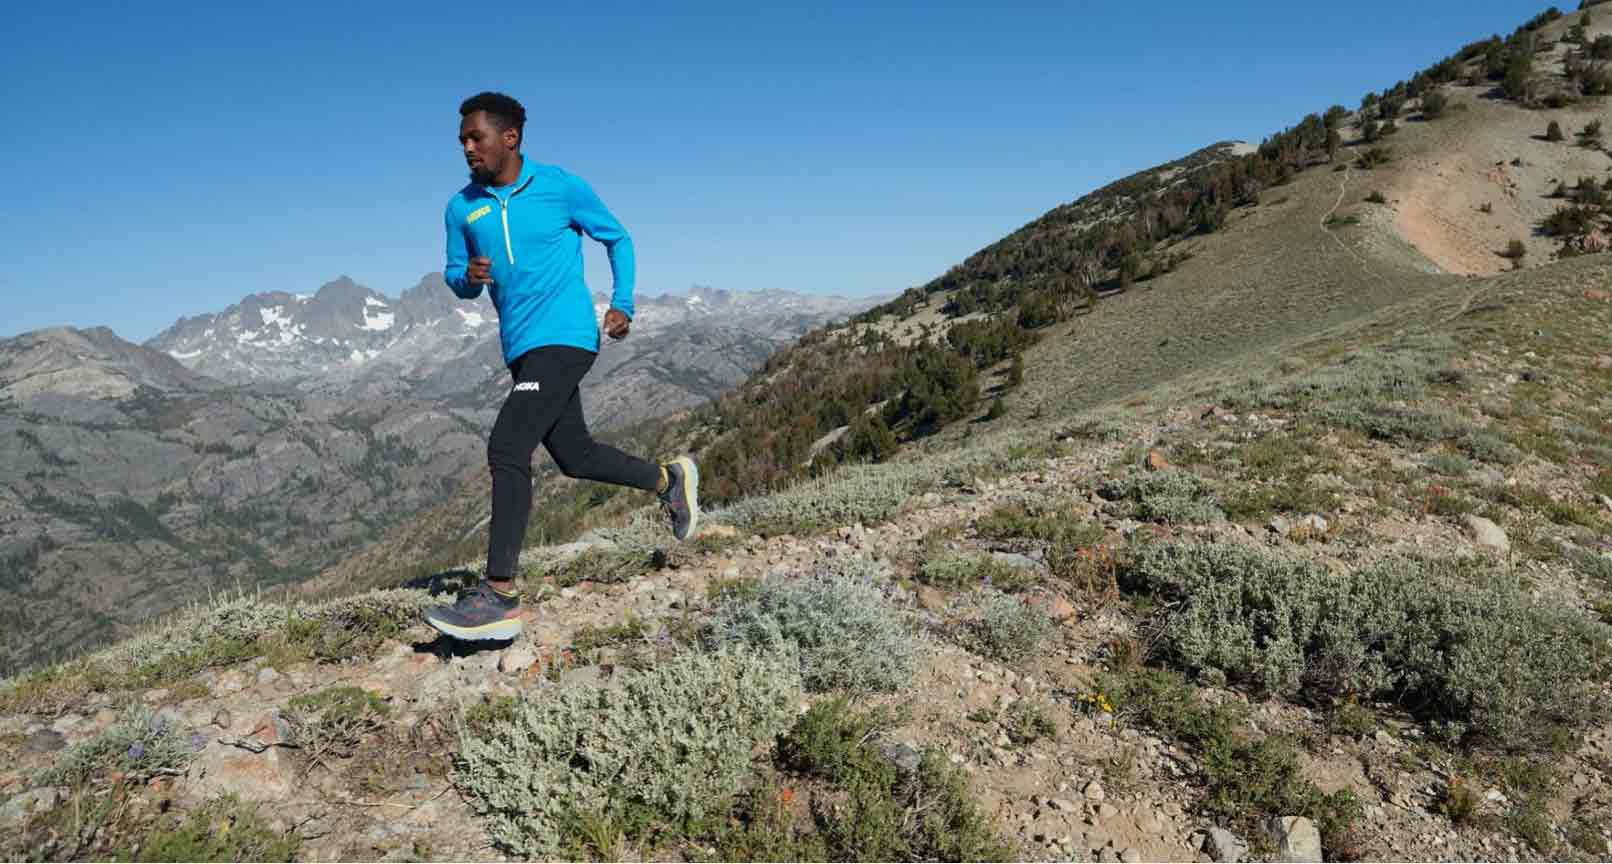 A man running on a trail with a mountain in the background